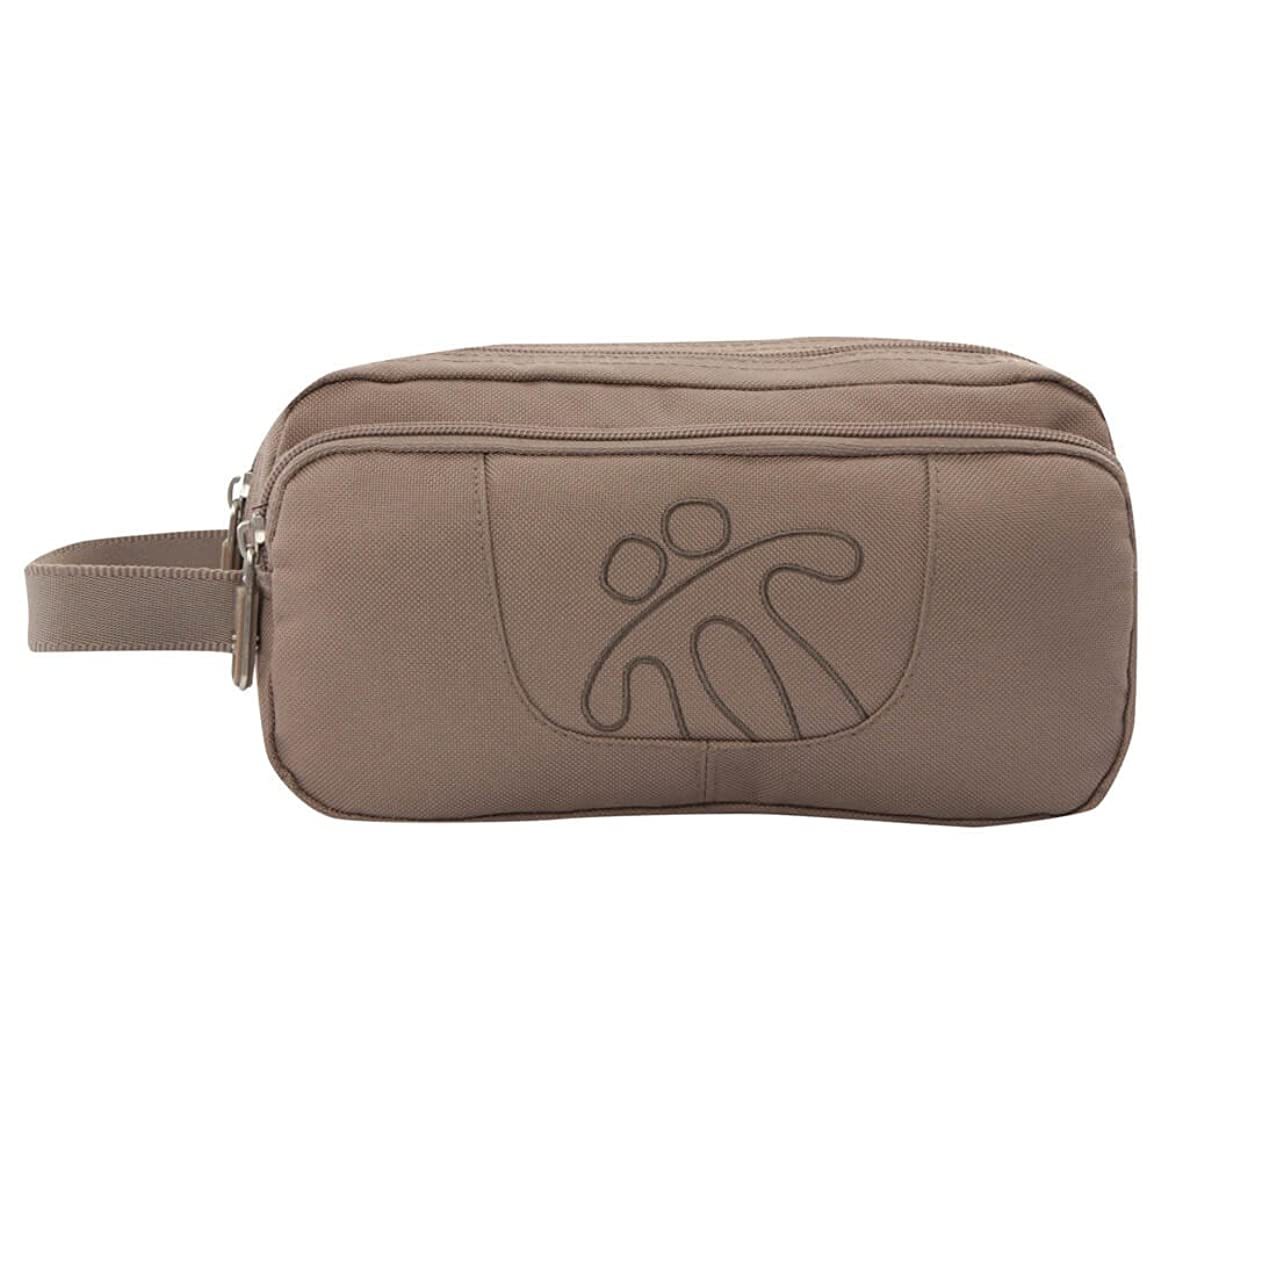 TOTTO Escolar Pencil Cases, 23 cm, Brown (Marrón)